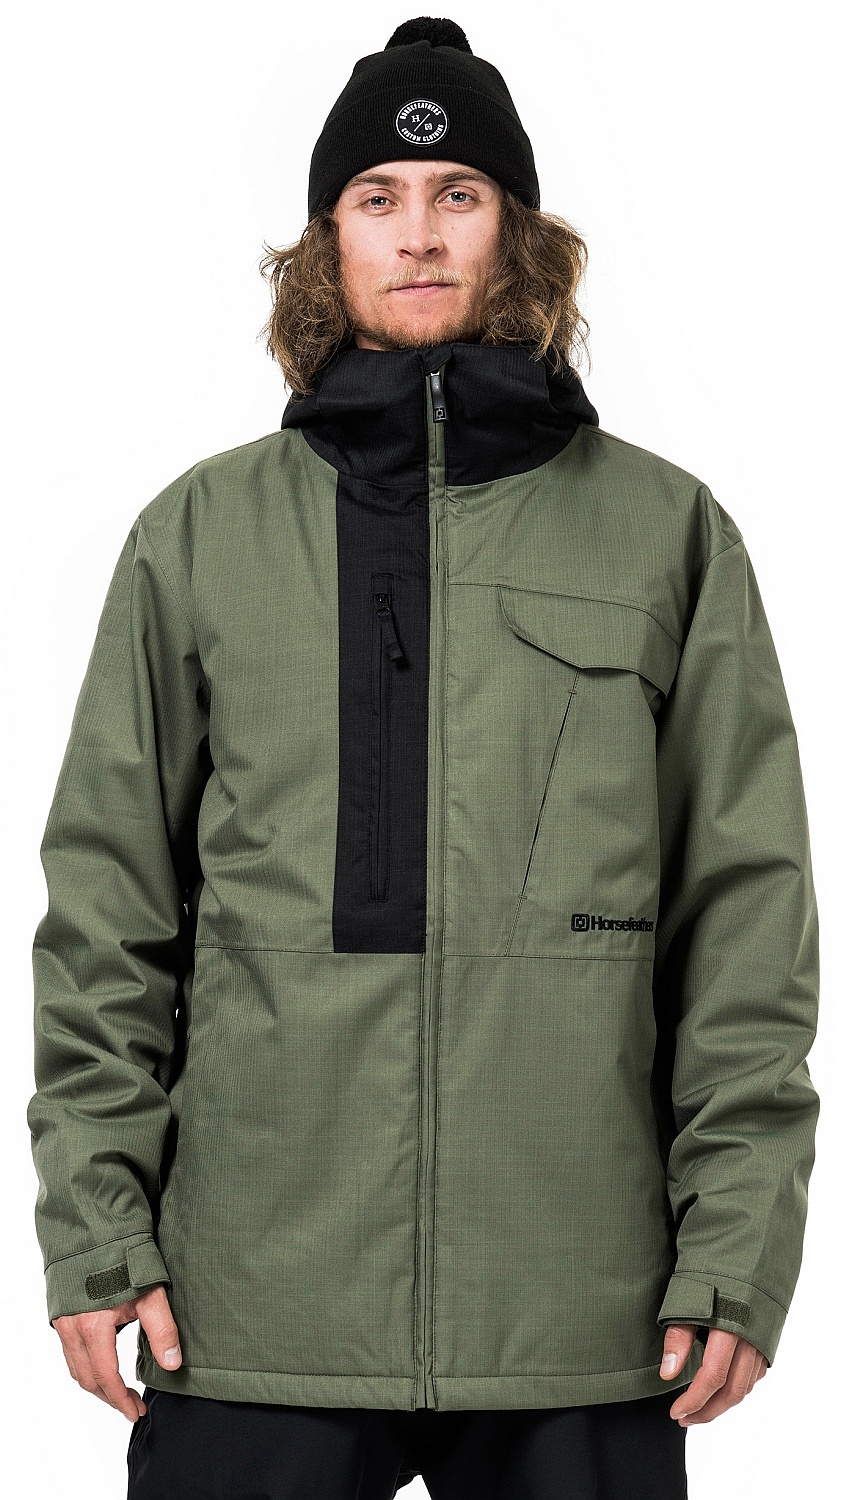 bunda Horsefeathers Kailas Insulated - Heather Olive S